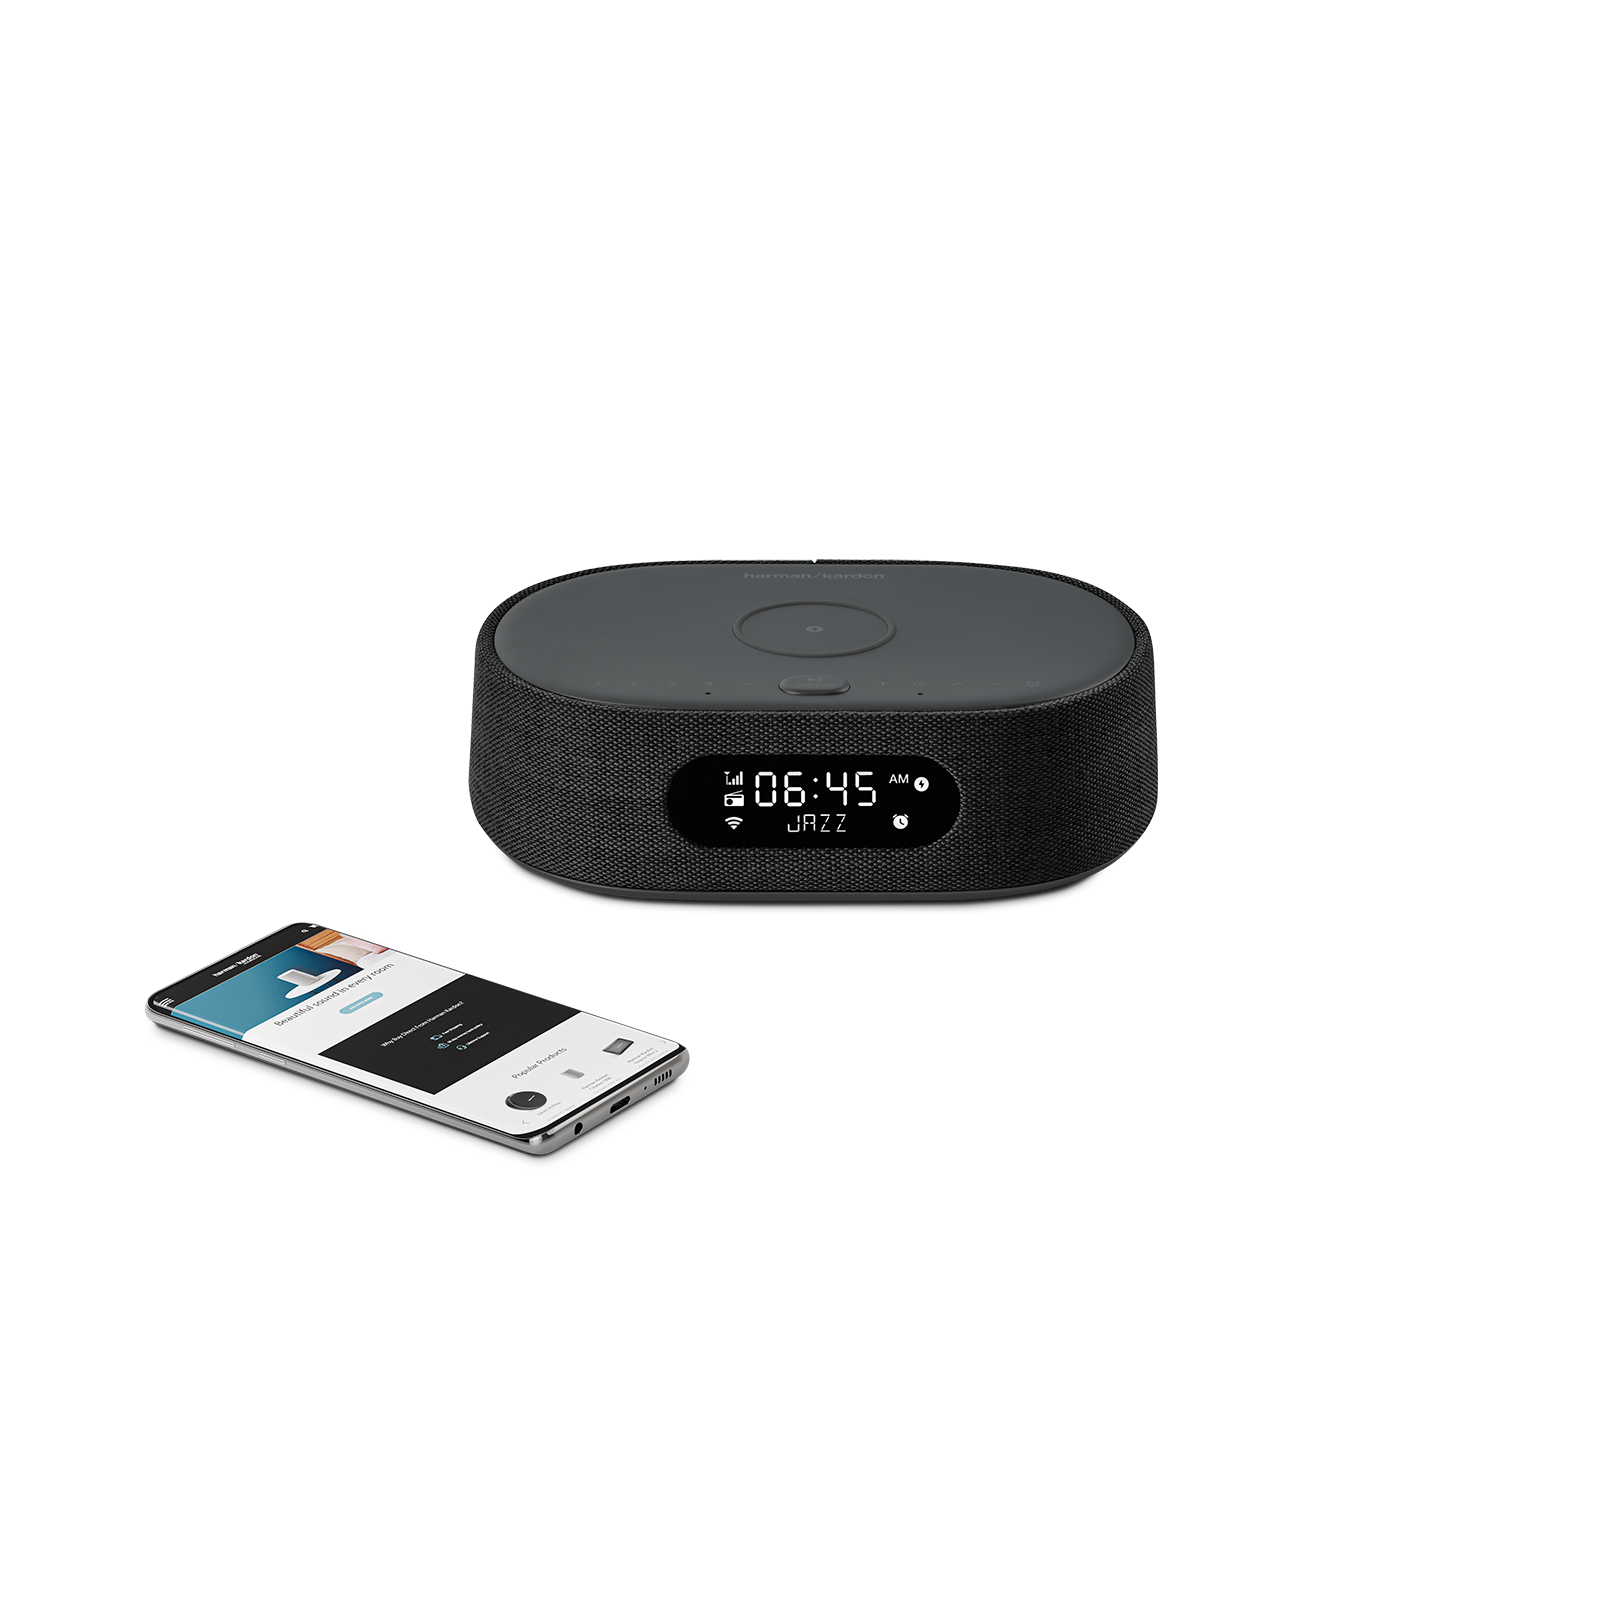 Harman Kardon Citation Oasis FM - Black - Voice-controlled speaker with clock radio and wireless phone charging - Detailshot 1